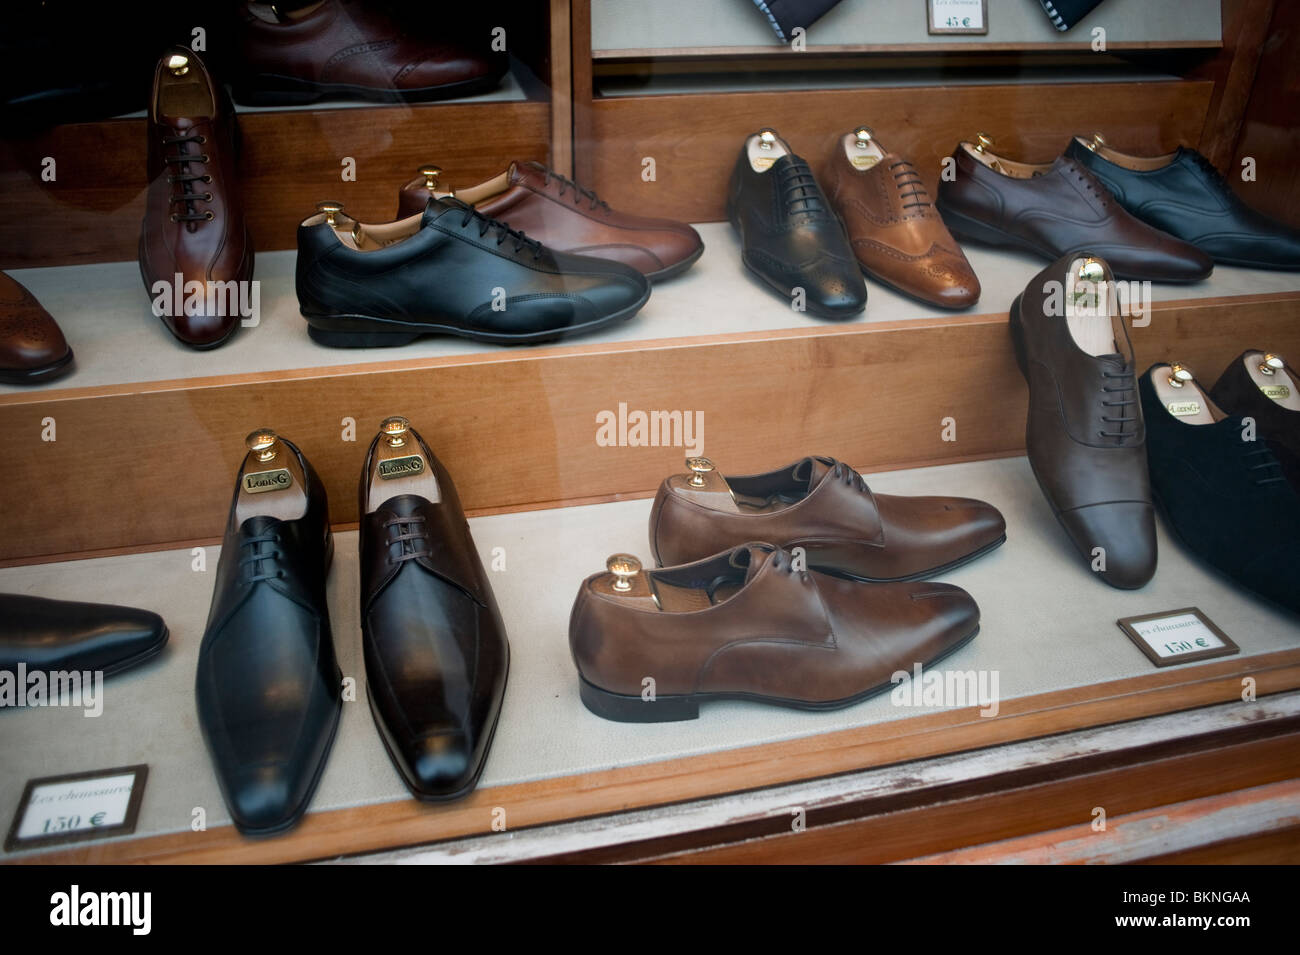 Men's Dress Shoes on Display in Shoe Store Window, Paris, France - Stock Image